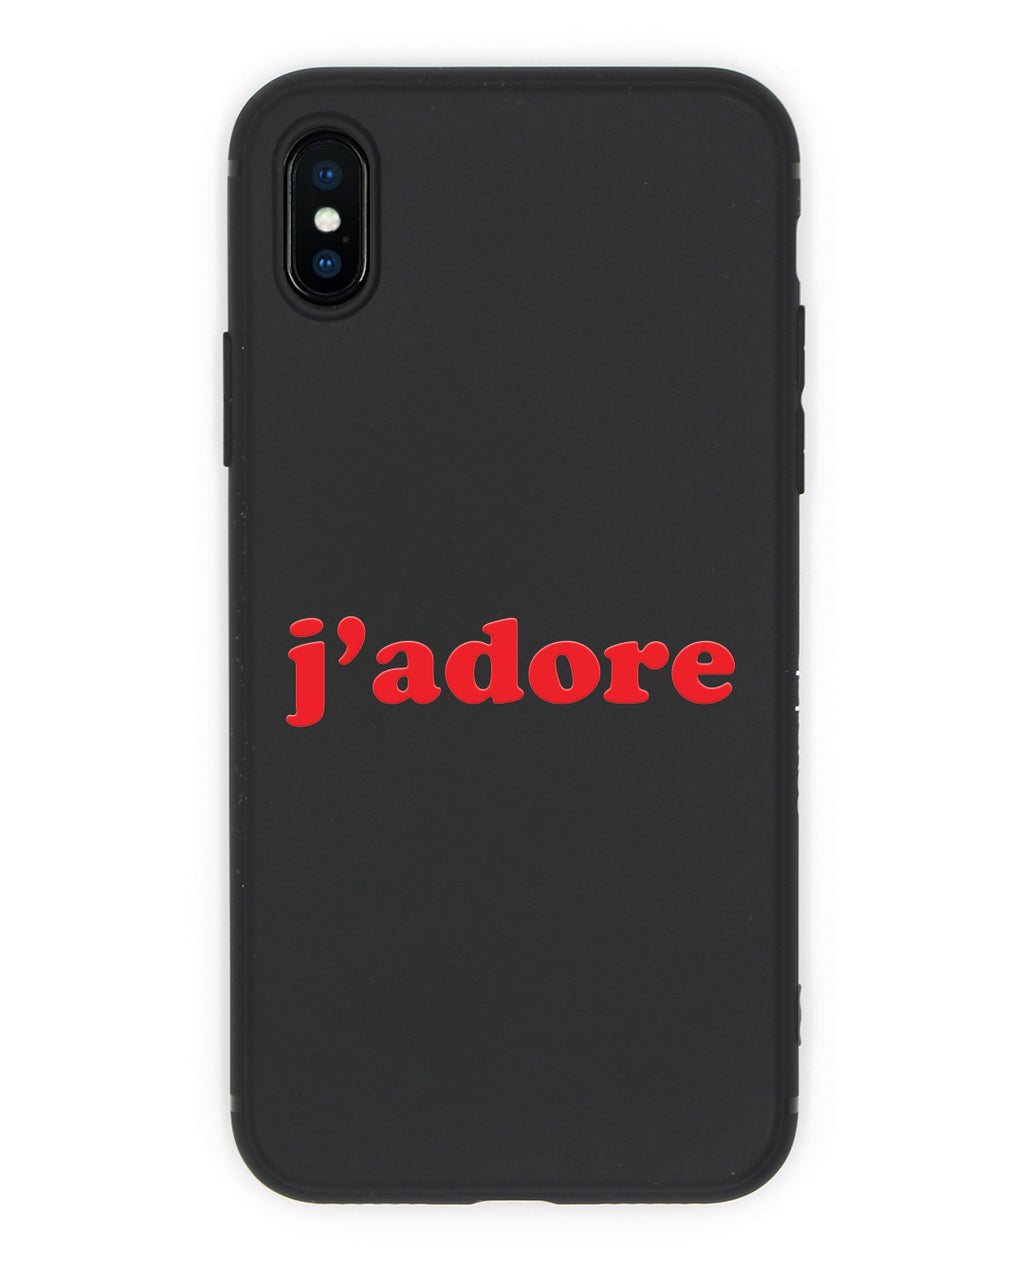 J'adore iPhone Case - Coverlab